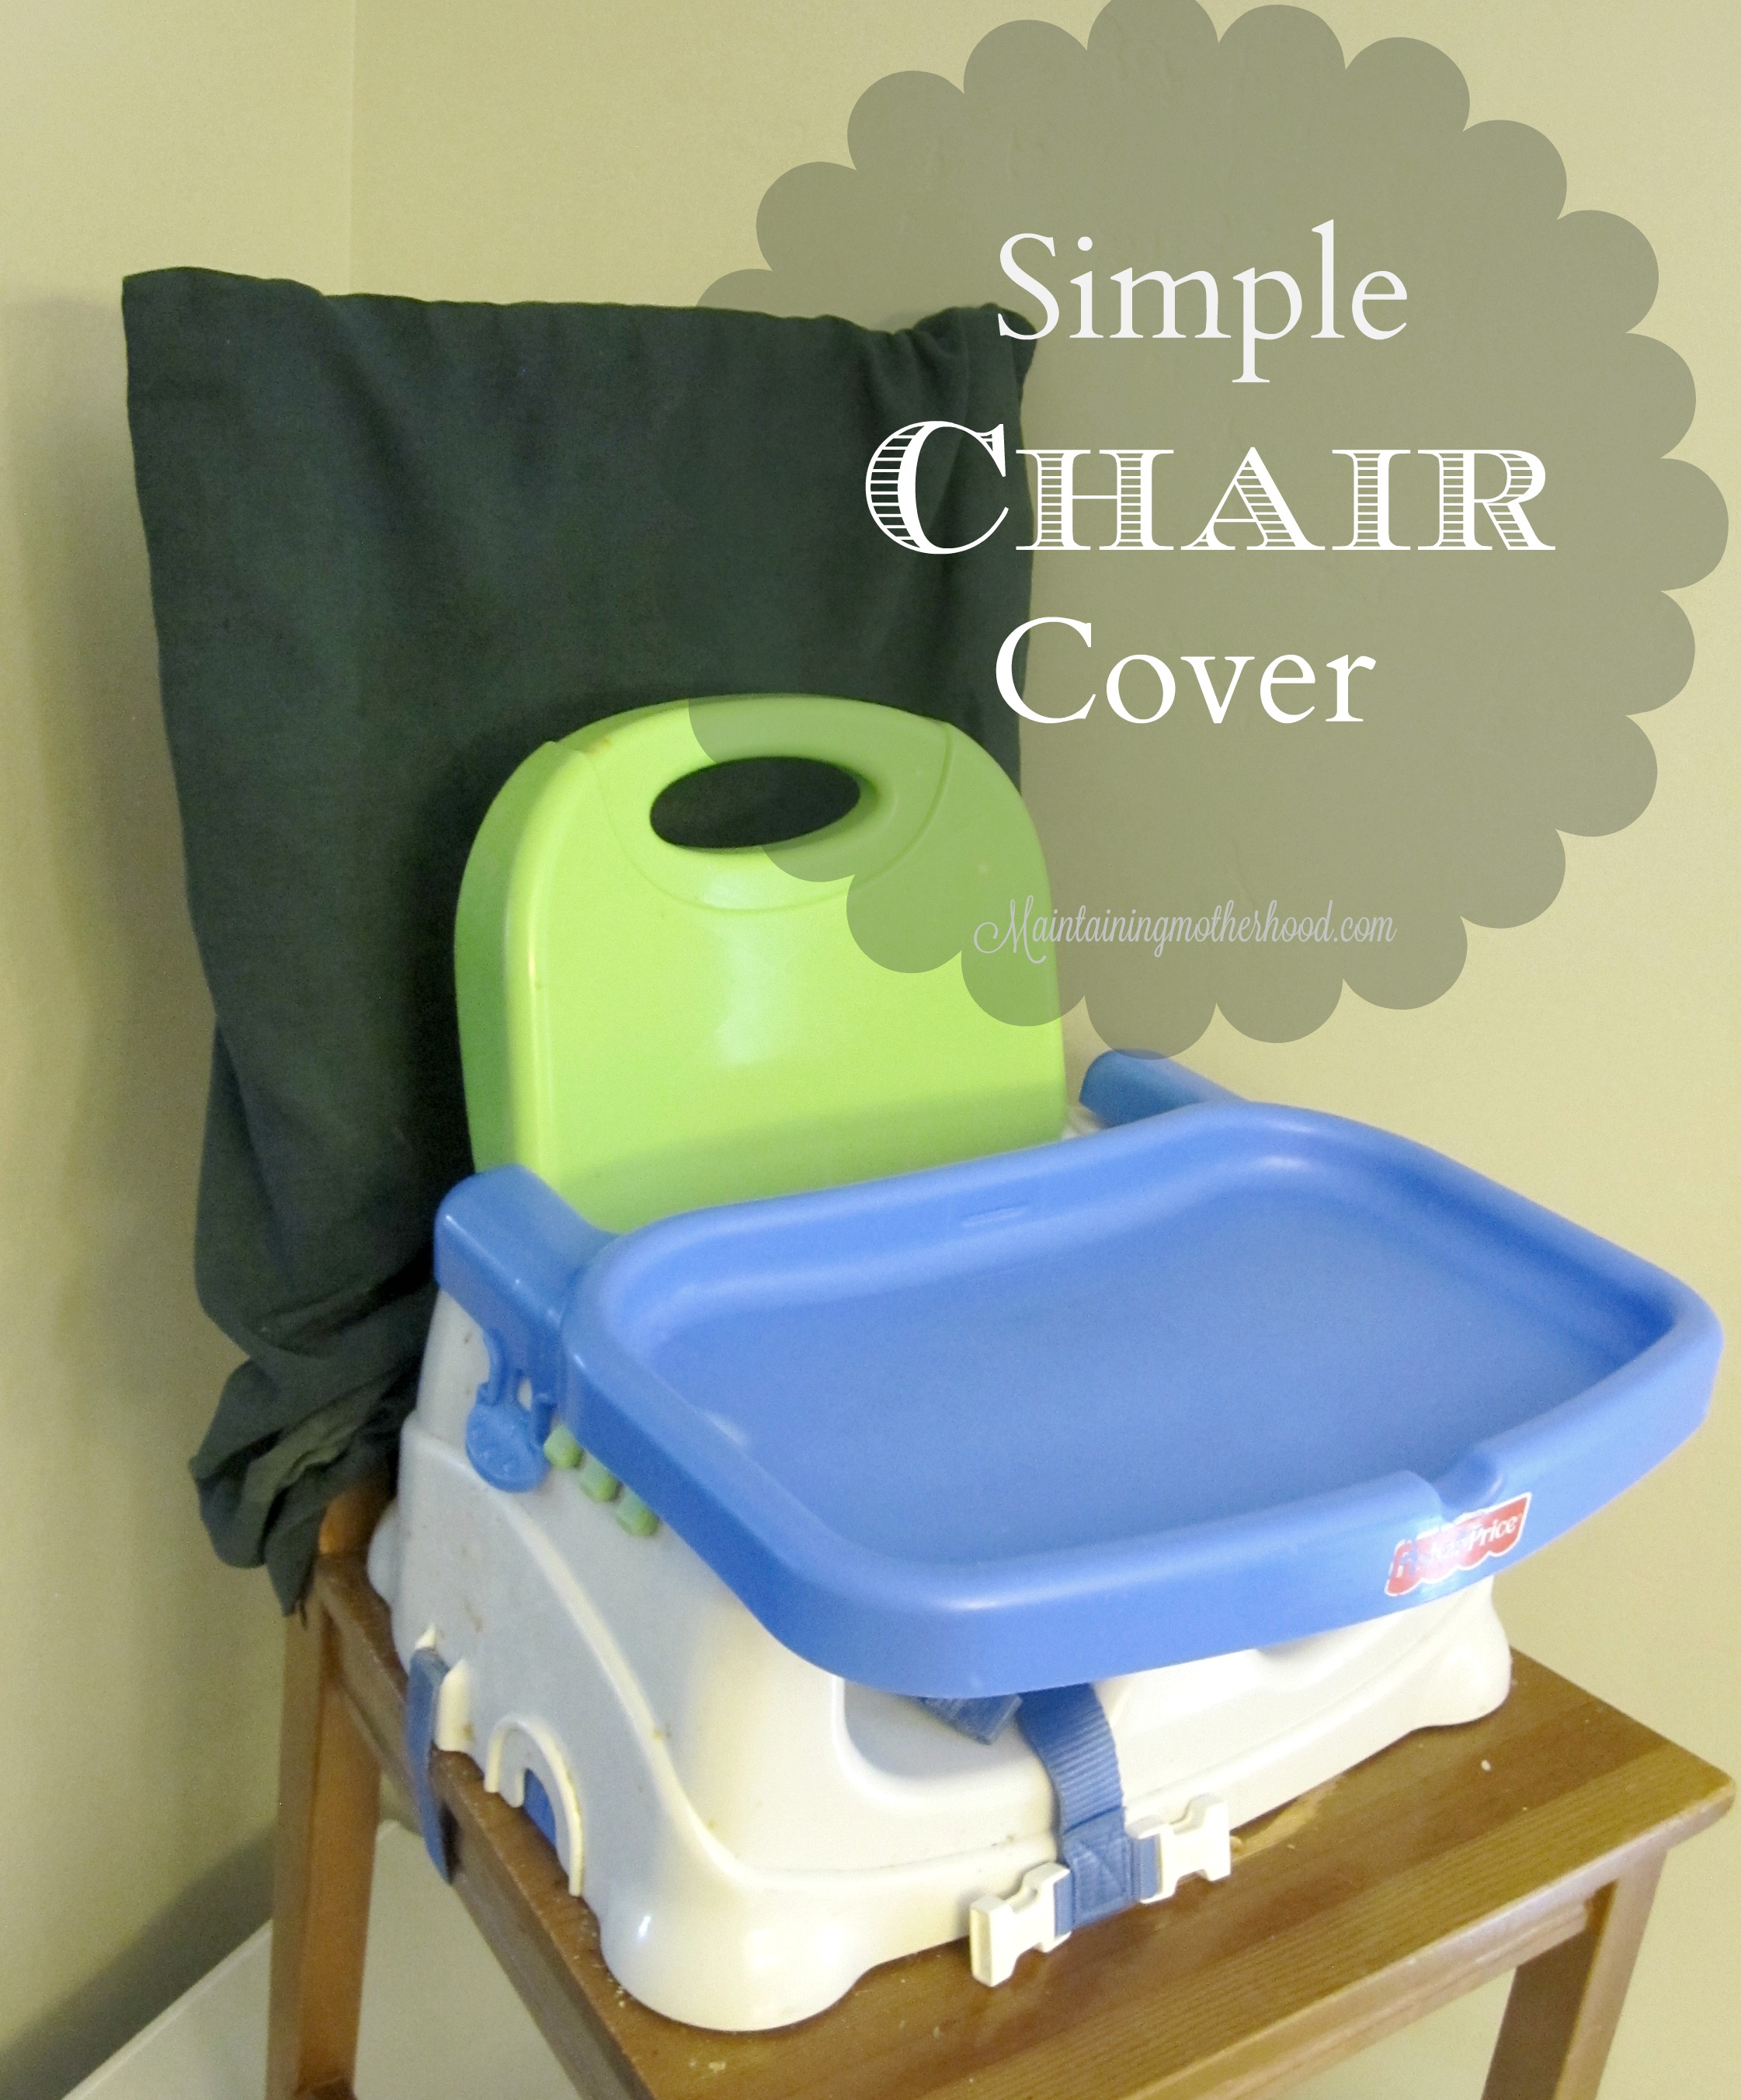 Kids are messy eaters. Using easy-to-clean chair covers reduces the amount of clean up after meals, and the scrub-down-the chairs rush before guests.